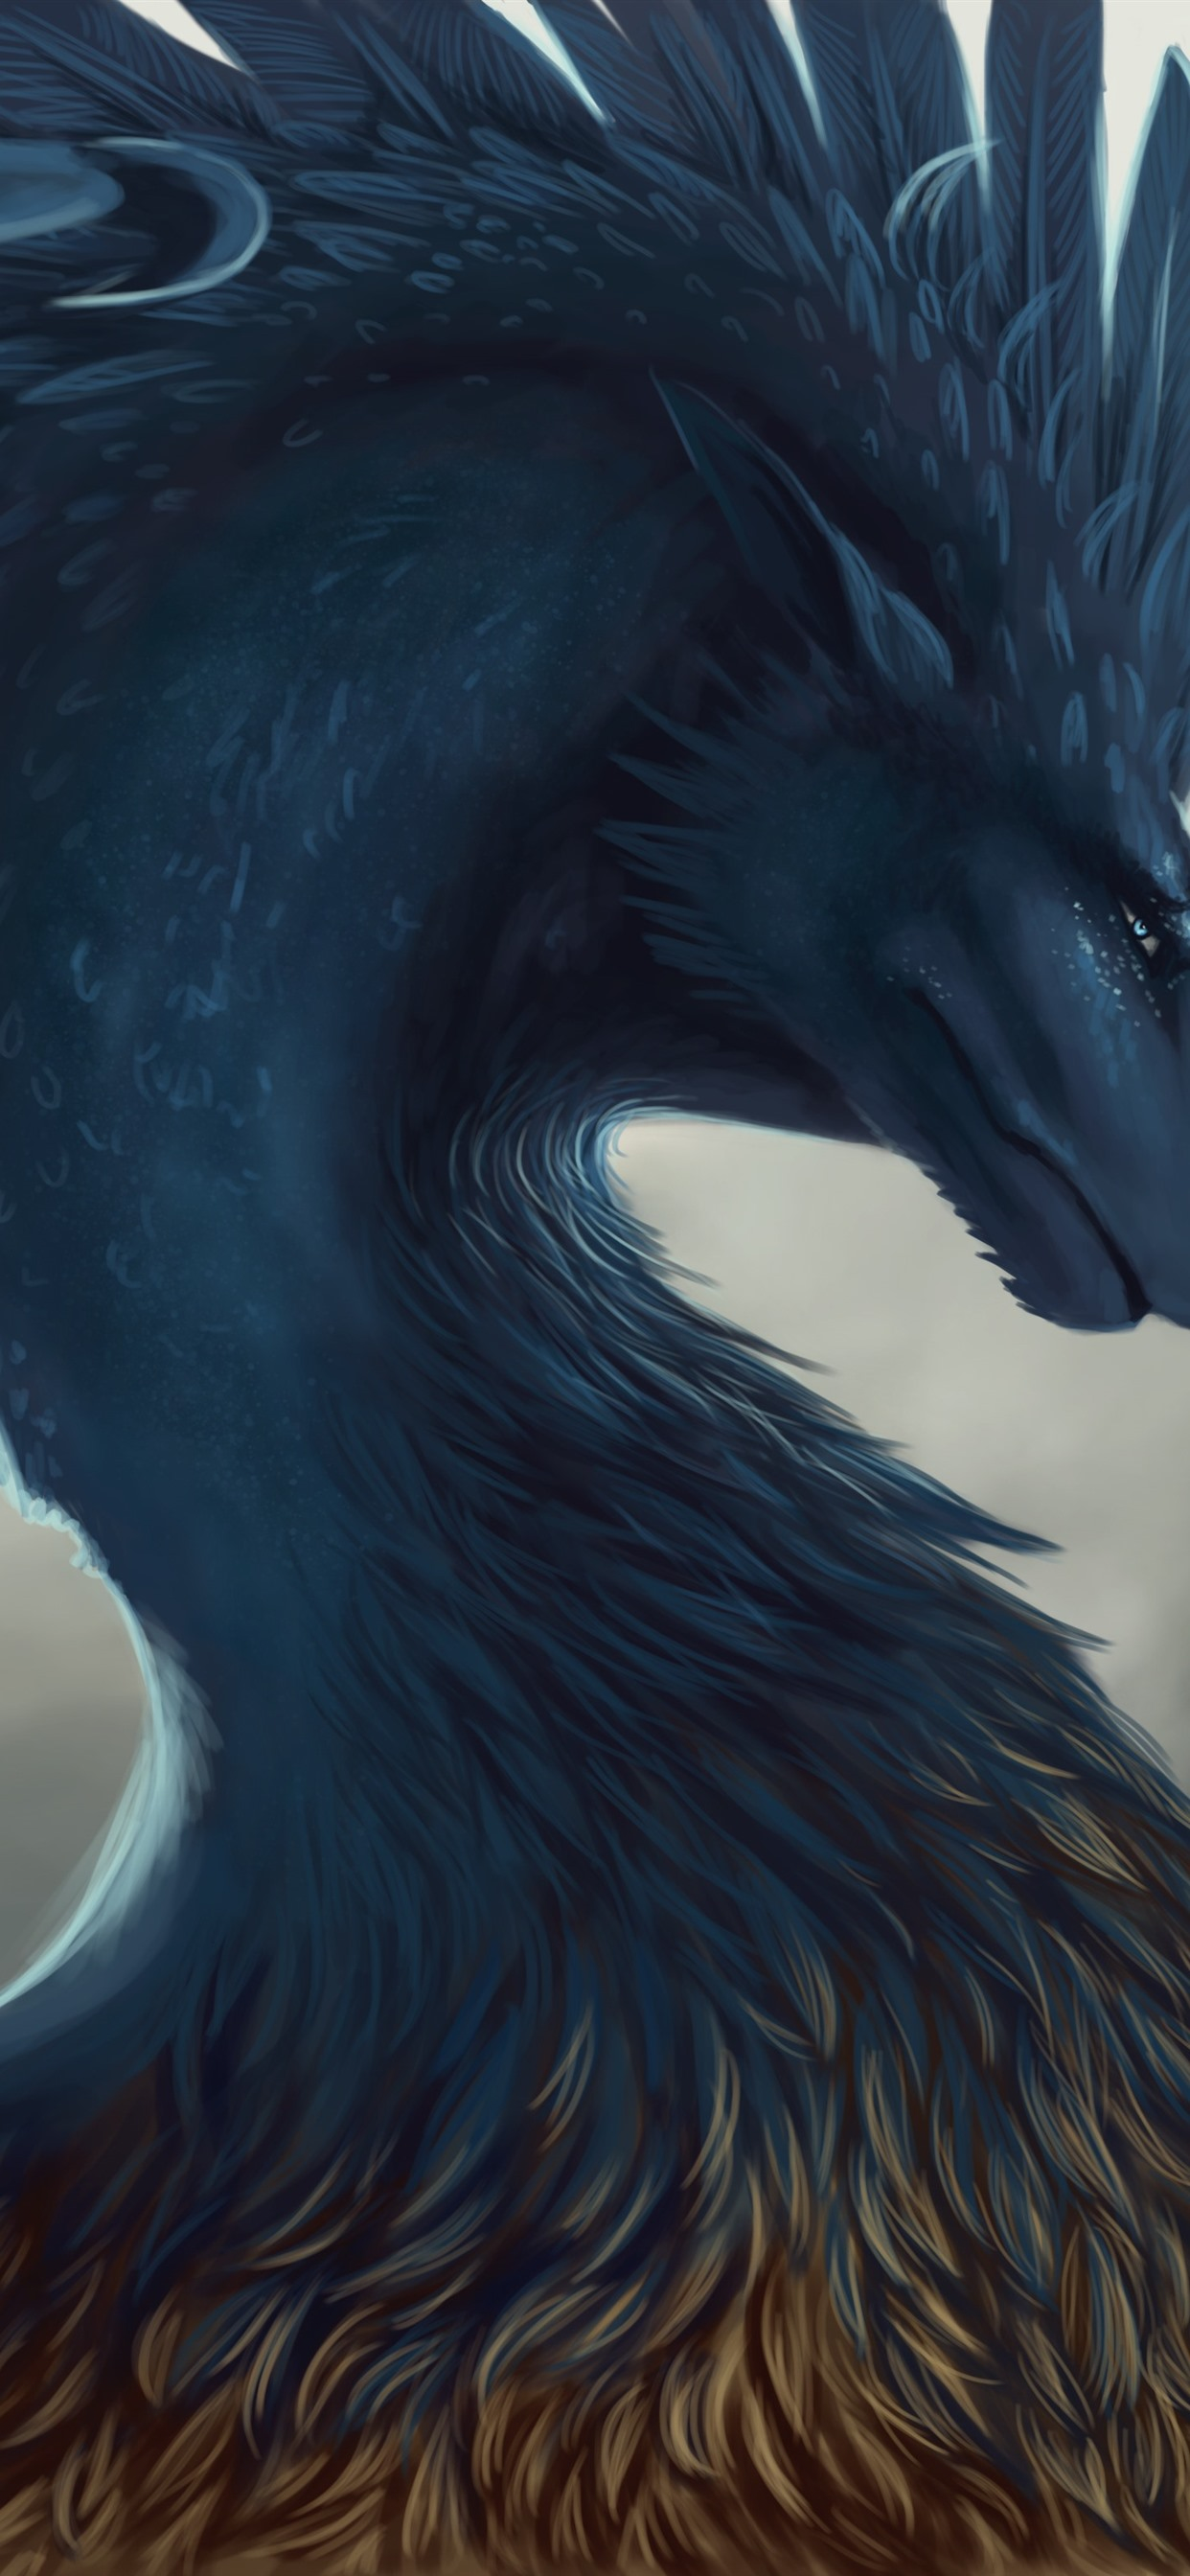 Iphone Wallpaper Dragon, Feathers, Art Picture - Iphone Xs Max Dragon - HD Wallpaper